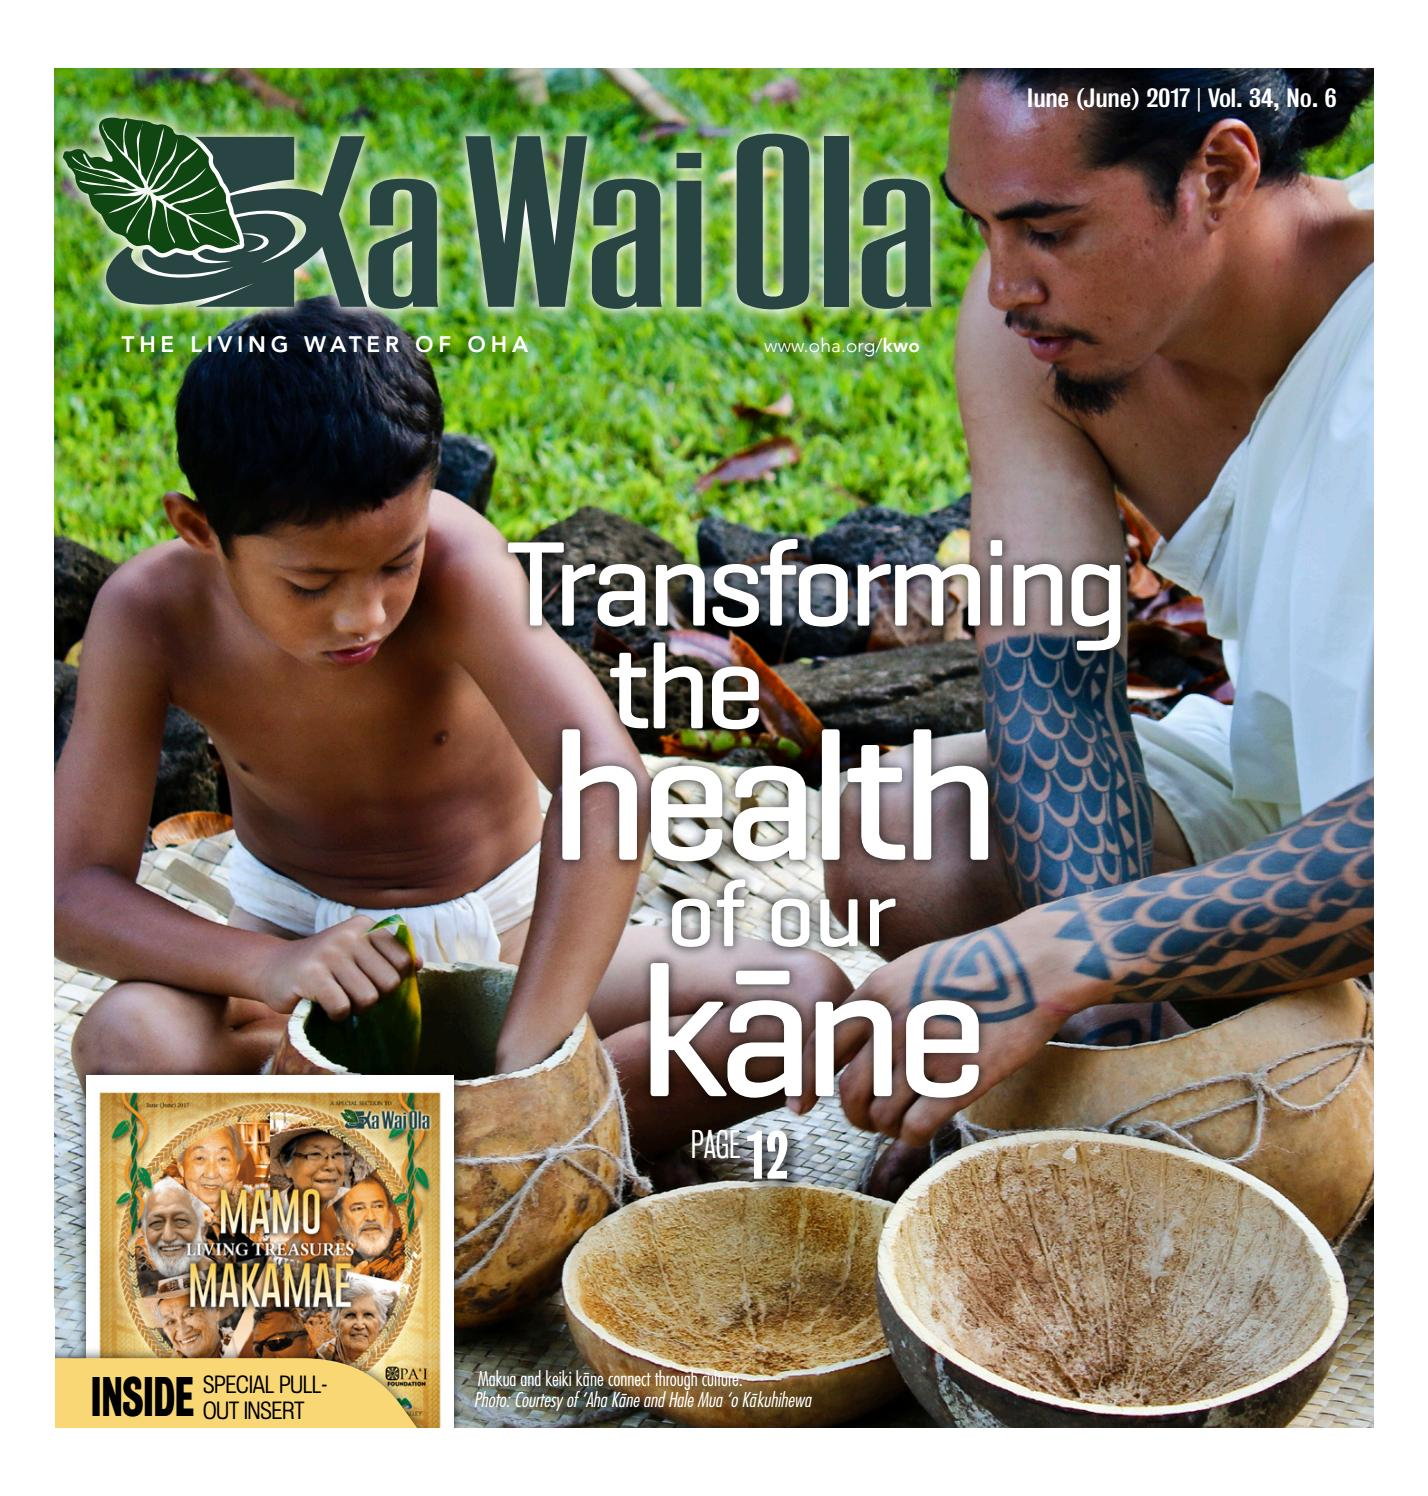 KWO - June 2017 | Vol. 34, No. 6 by Ka Wai Ola o OHA - The Living Water -  issuu